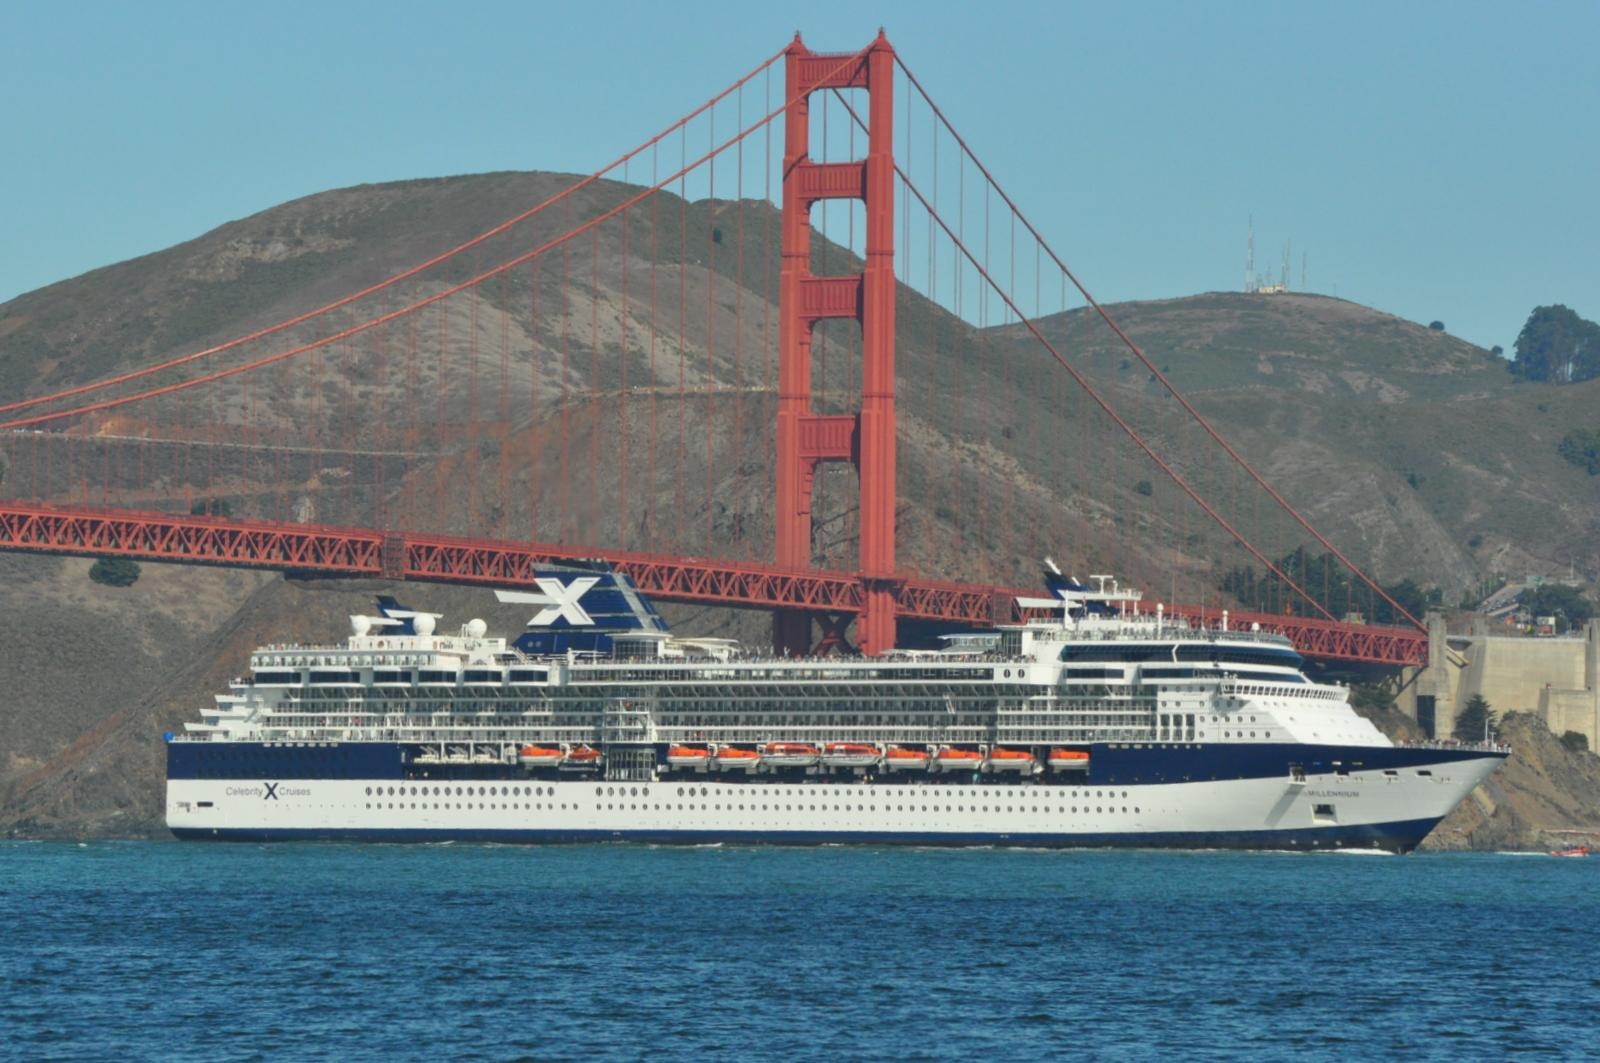 It's so hard to get a hotel for Salesforce's big conference, they just hired a cruise ship